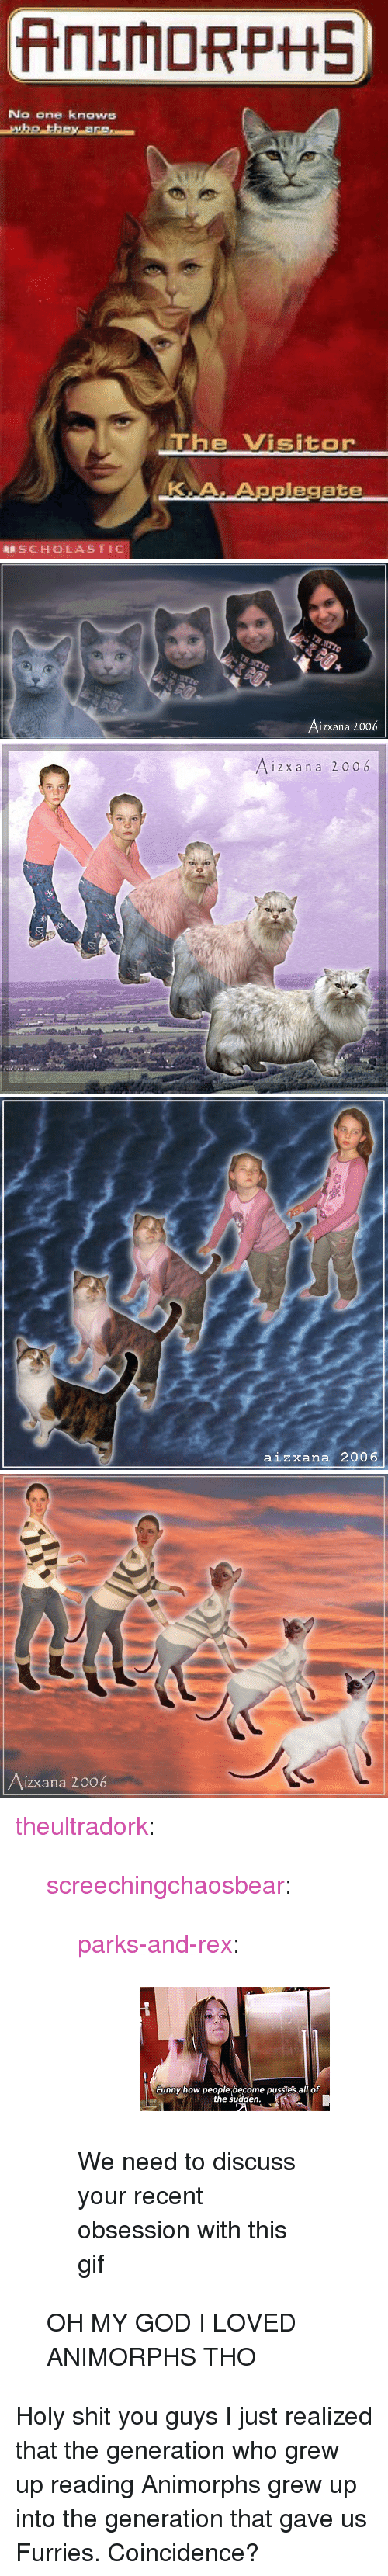 "Animorphs, Gif, and God: No one knows  e Visitor  KA.Applegate  SCHOLASTIC   Aizxana 2006   i z x an a 2006   aizxana 2006   izxana 2006 <p><a href=""http://theultradork.tumblr.com/post/172923844978/screechingchaosbear-parks-and-rex-we-need"" class=""tumblr_blog"">theultradork</a>:</p>  <blockquote><p><a href=""http://screechingchaosbear.tumblr.com/post/166140279209/parks-and-rex-we-need-to-discuss-your-recent"" class=""tumblr_blog"">screechingchaosbear</a>:</p> <blockquote> <p><a href=""http://parksandrex.com/post/166128235700"" class=""tumblr_blog"">parks-and-rex</a>:</p> <blockquote><figure data-orig-height=""160"" data-orig-width=""245""><img src=""https://78.media.tumblr.com/0d774fafe645b92e4abc1fcfeaddb0f8/tumblr_inline_oxfkbssugd1ty99rh_540.gif"" data-orig-height=""160"" data-orig-width=""245""/></figure></blockquote>  <p>We need to discuss your recent obsession with this gif </p> </blockquote> <p>OH MY GOD I LOVED ANIMORPHS THO</p></blockquote>  <p>Holy shit you guys I just realized that the generation who grew up reading Animorphs grew up into the generation that gave us Furries. Coincidence?</p>"